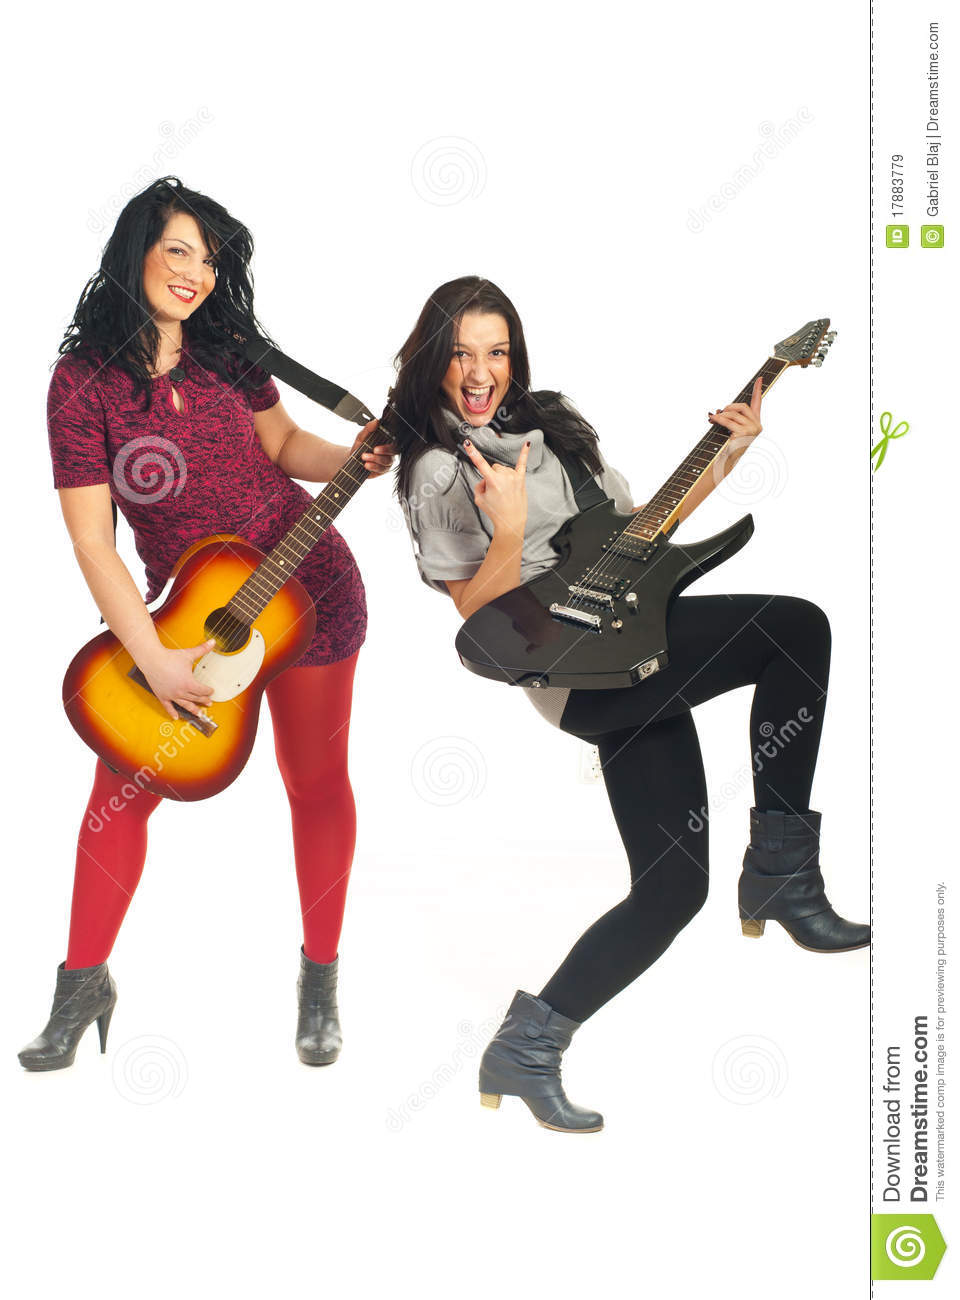 Rock Star Girl Clipart Comrock Stars Band Girls With